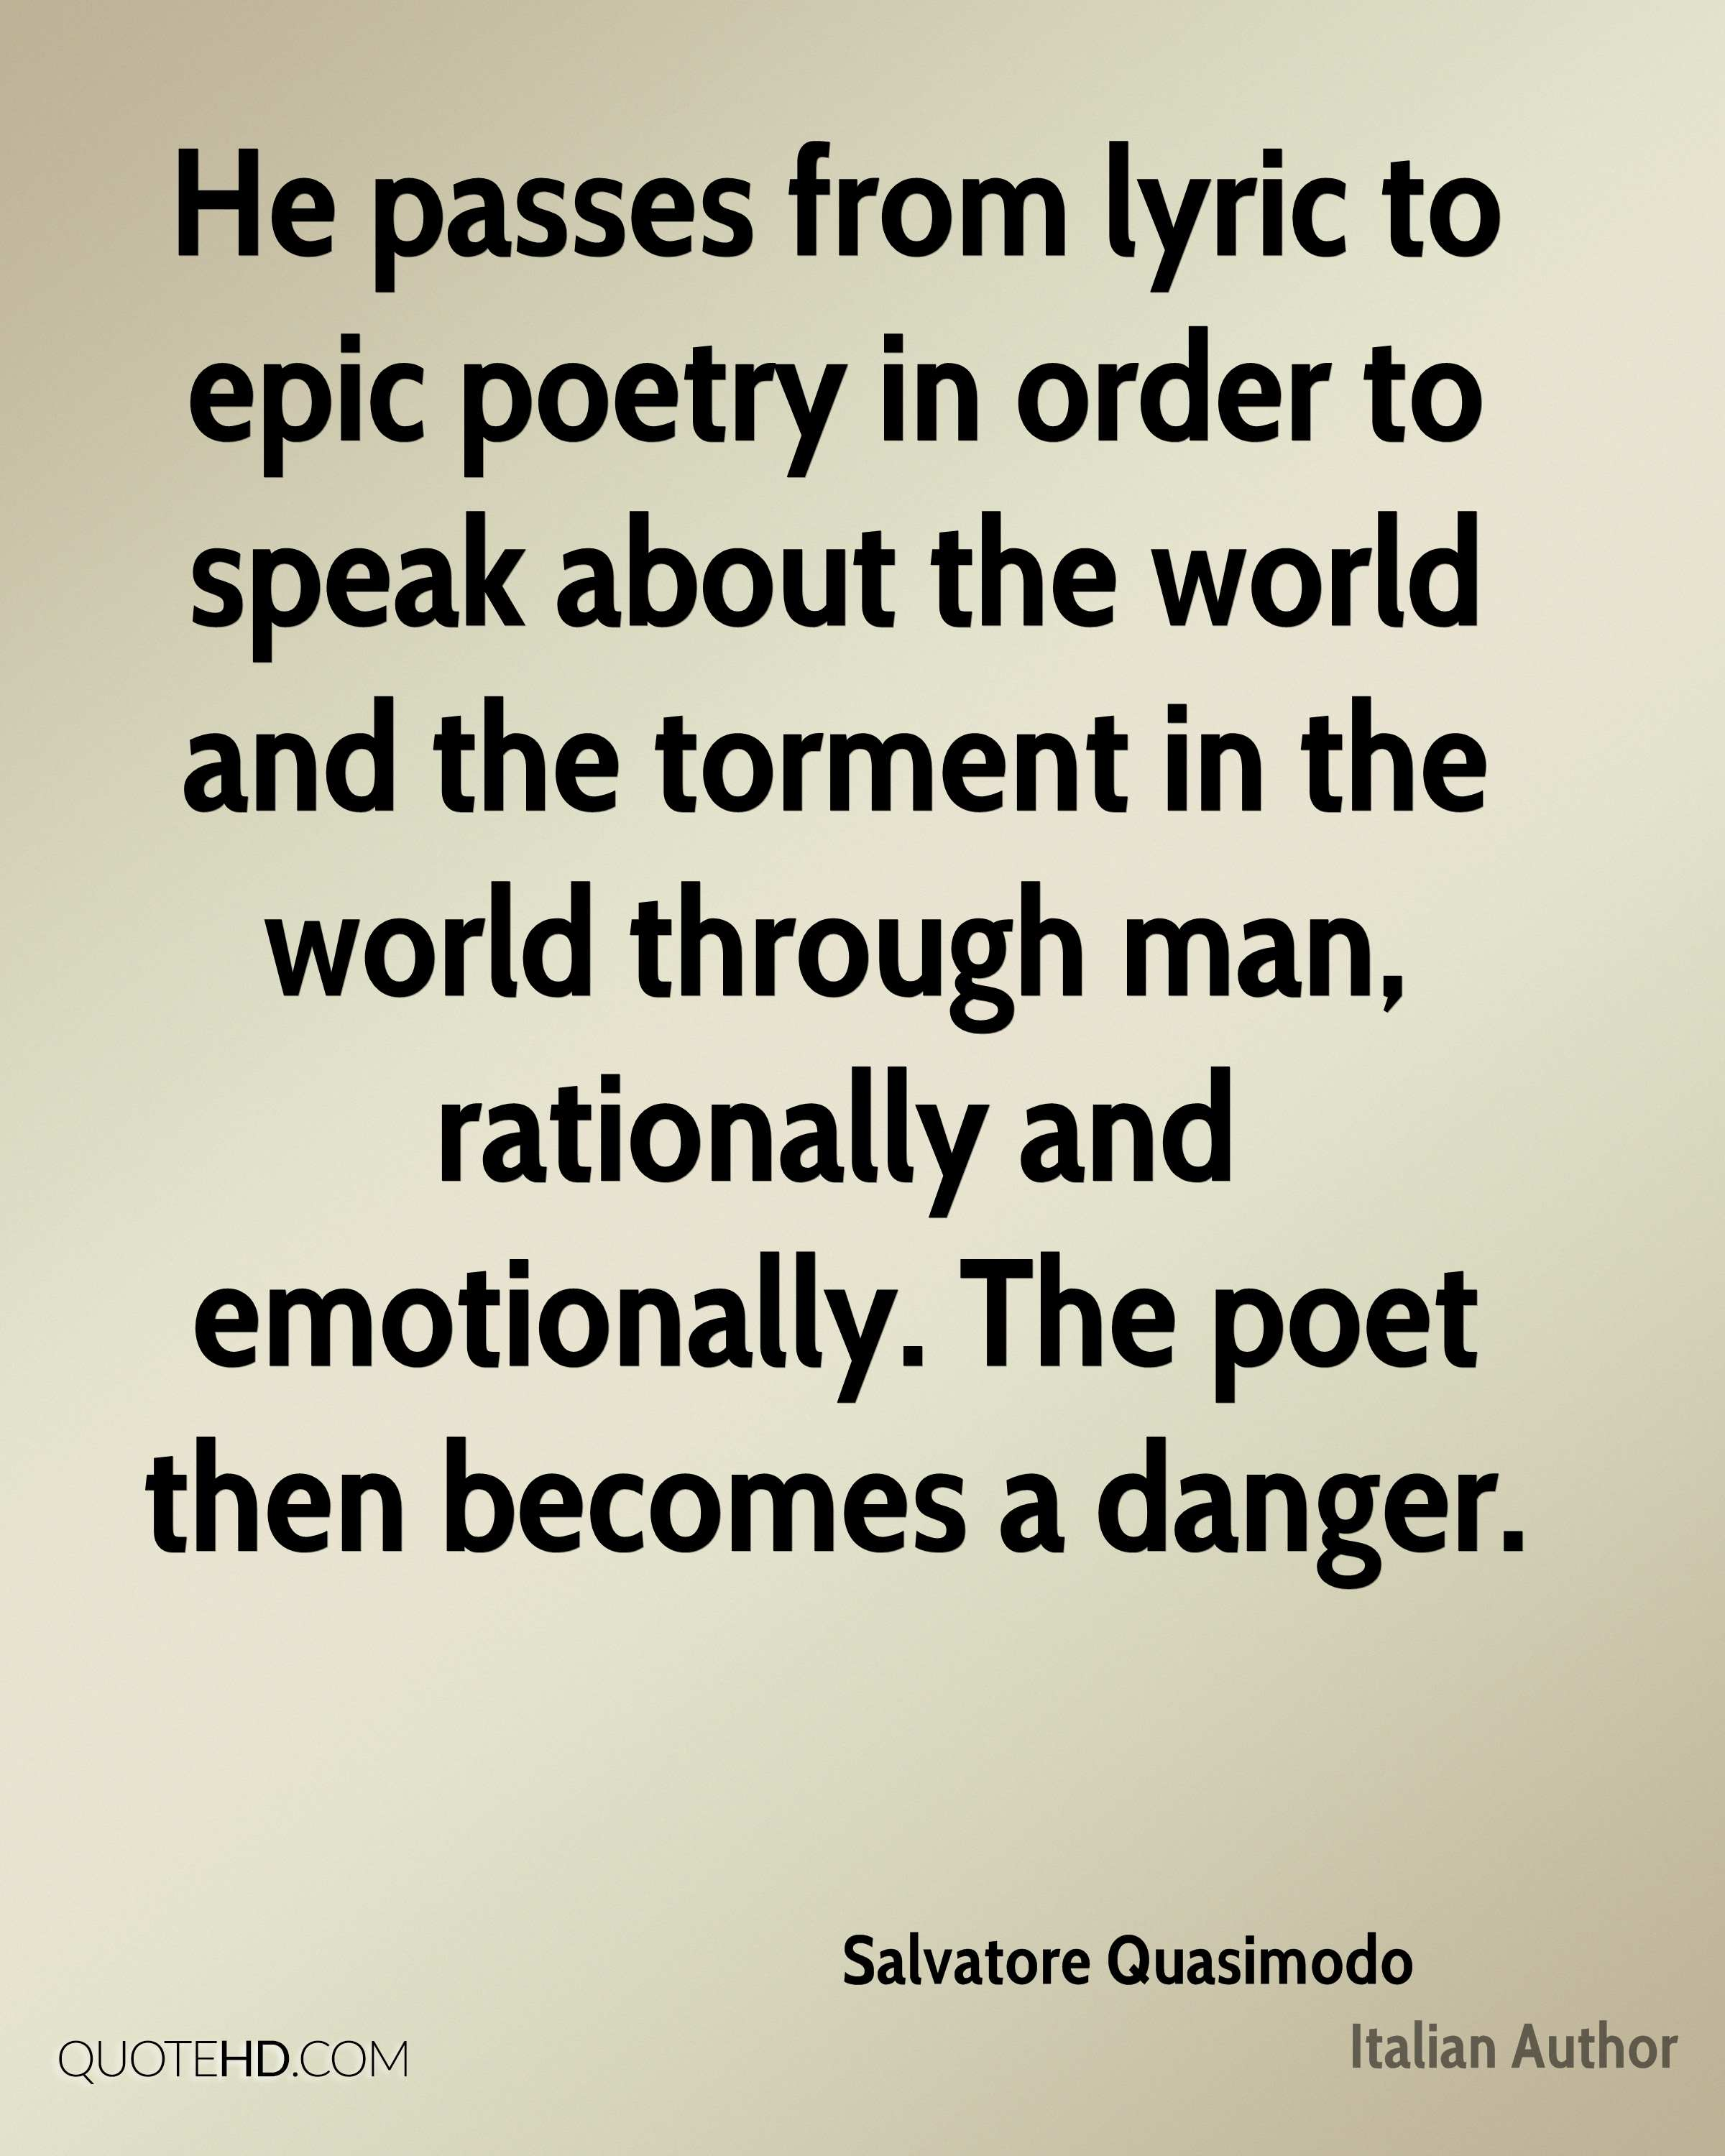 He passes from lyric to epic poetry in order to speak about the world and the torment in the world through man, rationally and emotionally. The poet then becomes a danger.